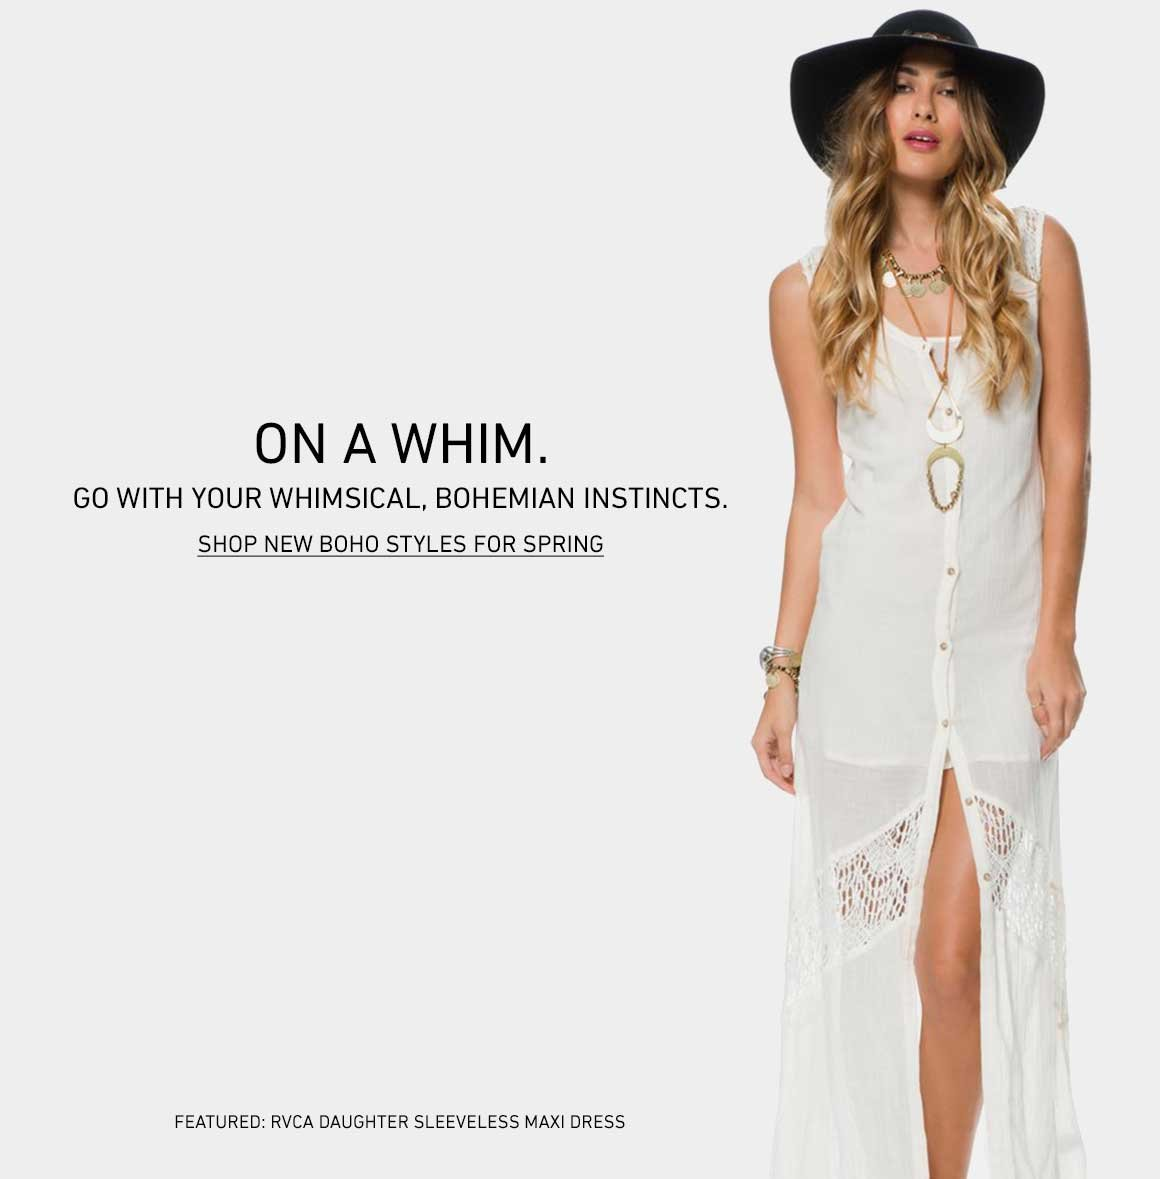 Shop New Boho Styles for Spring